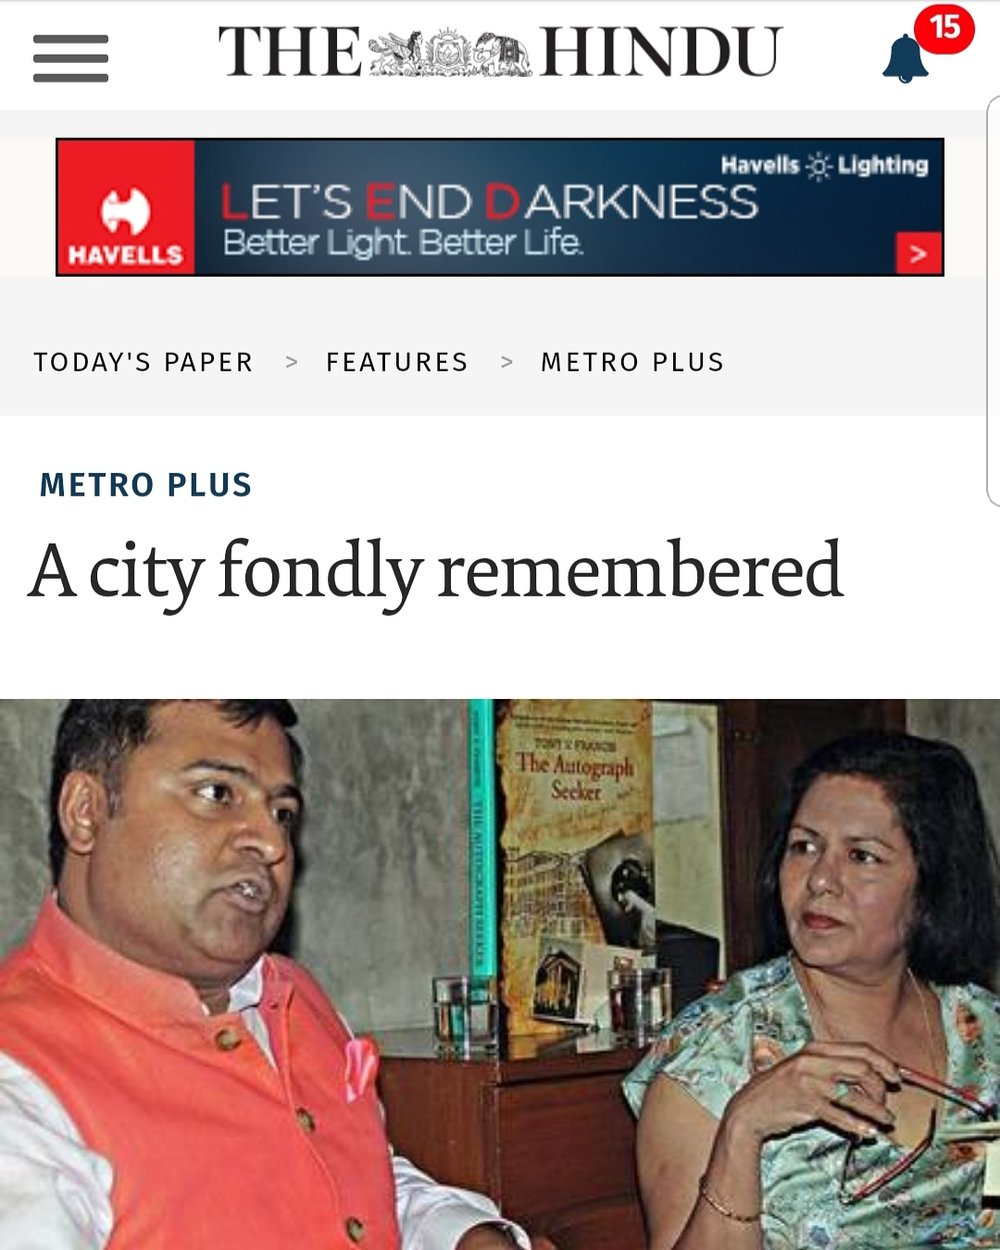 The Hindu covers a session on The Autograph Seeker under the title 'A city fondly remembered'